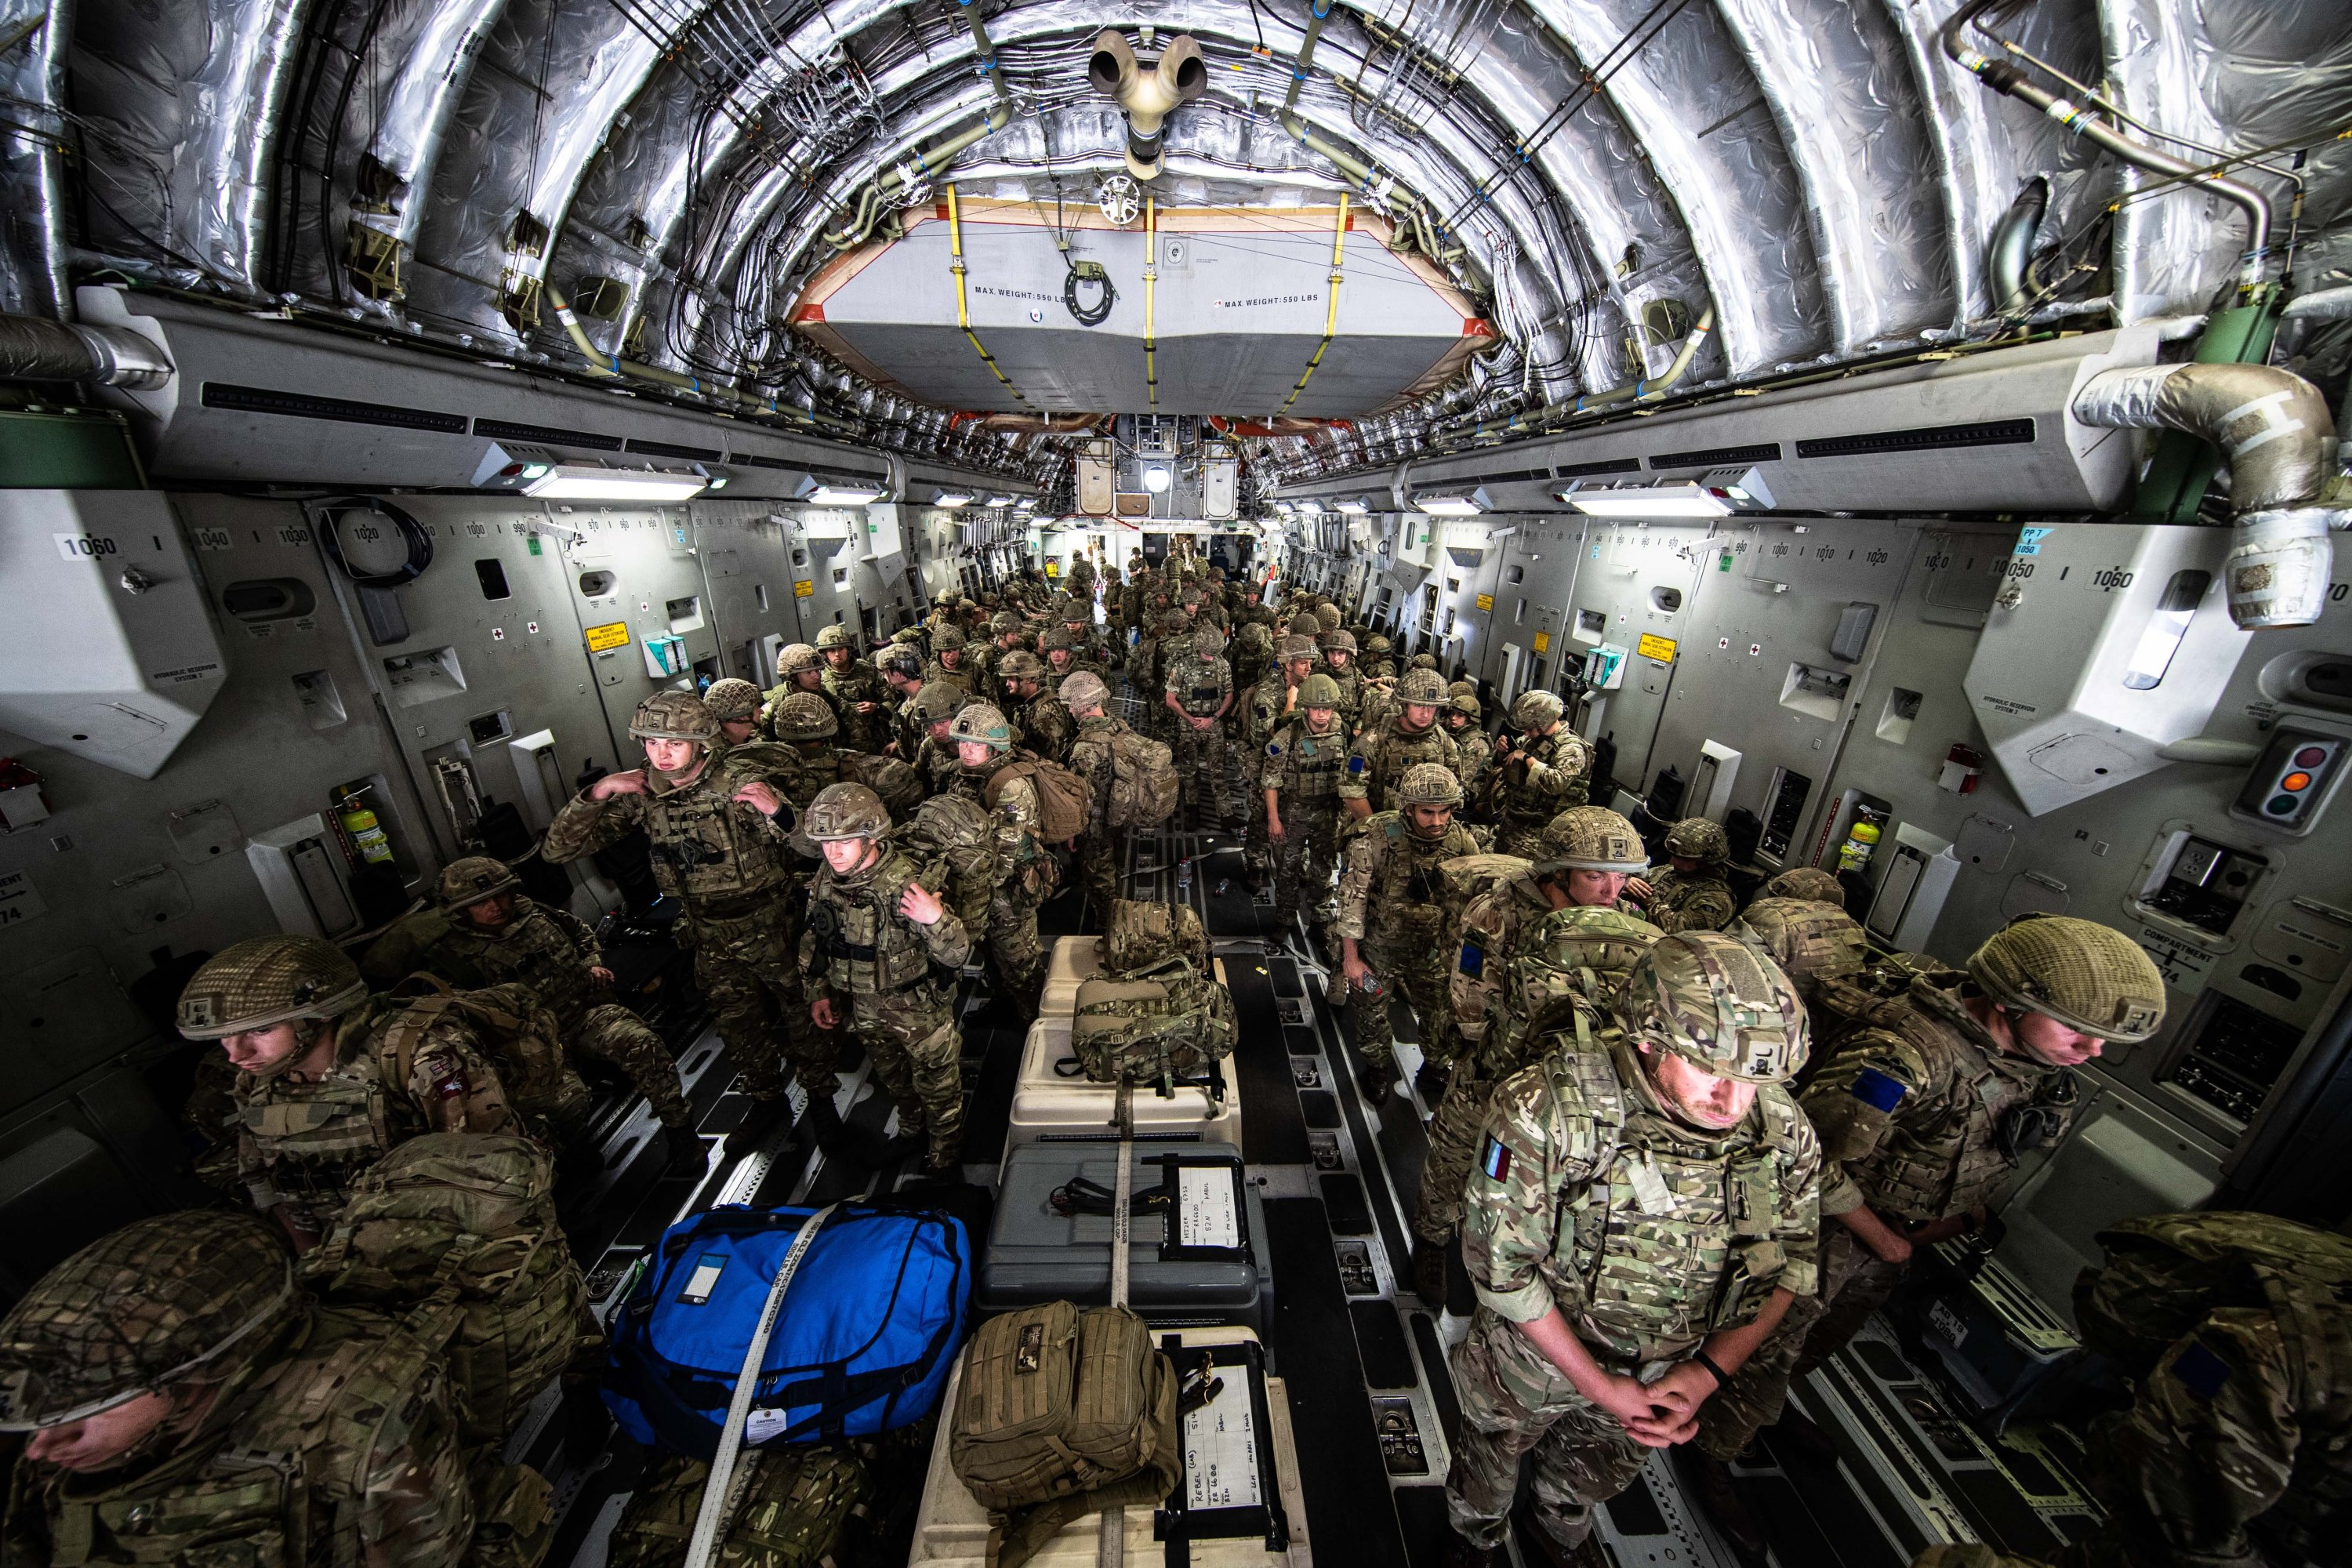 British Forces from 16 Air Assault Brigade on arrival in Kabul, Afghanistan, Aug. 2021. (EPA Photo)